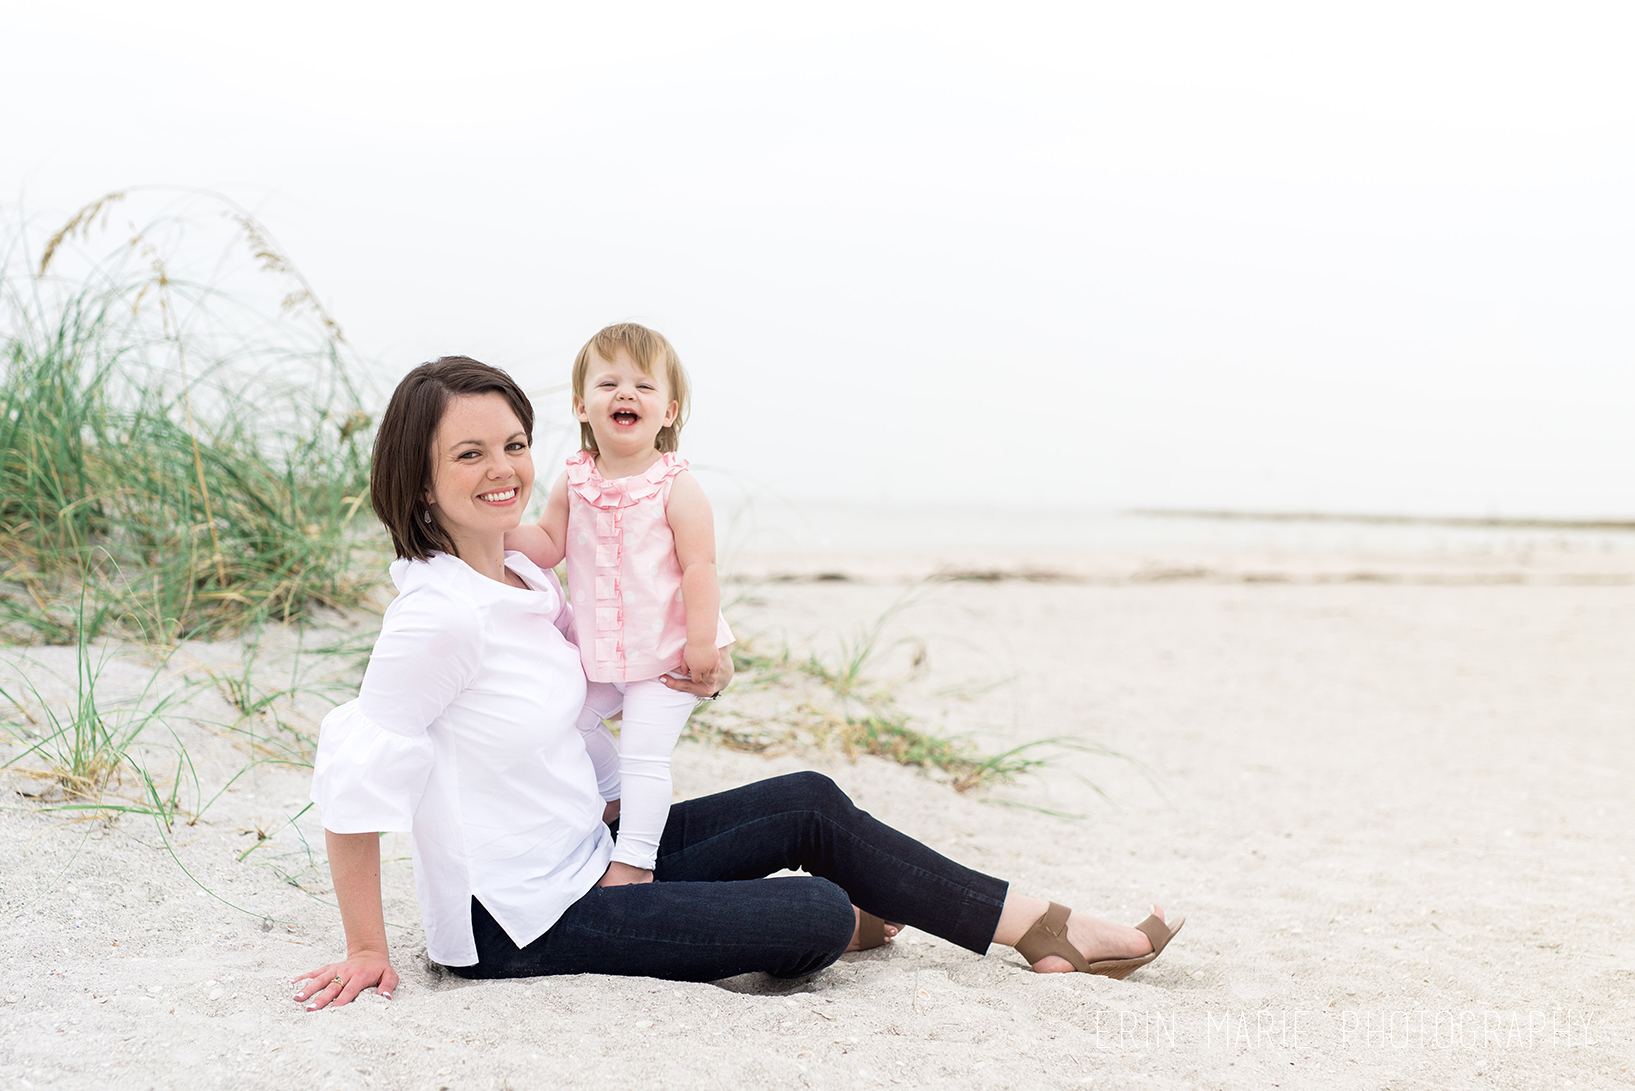 Sandkey_Beach_Family_Photographer_11.jpg